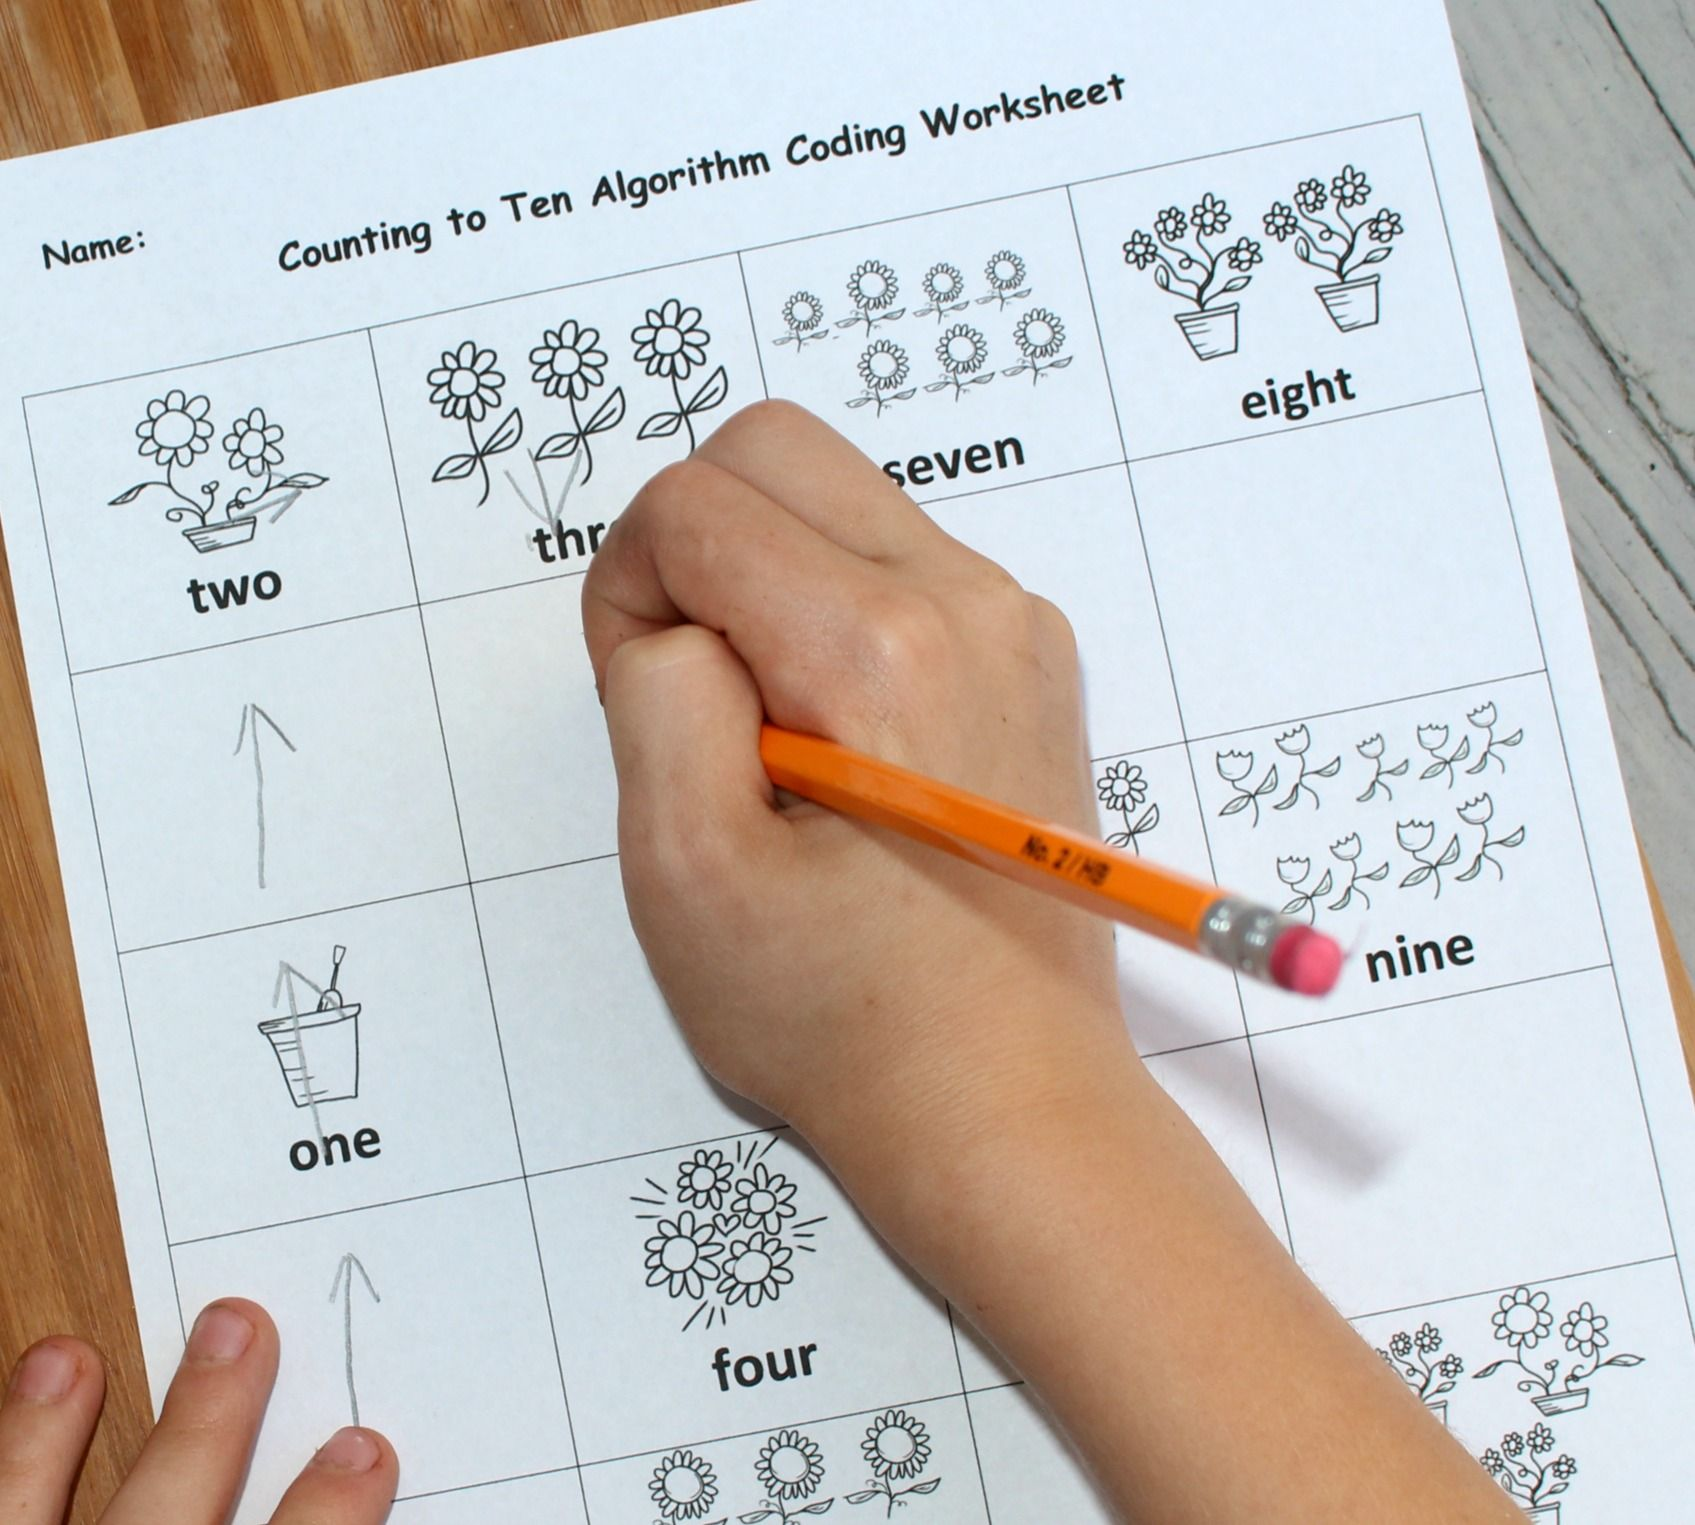 Counting To Ten Algorithm Coding Worksheet For Preschoolers Preschool Worksheets Coding Algorithm [ 1525 x 1695 Pixel ]